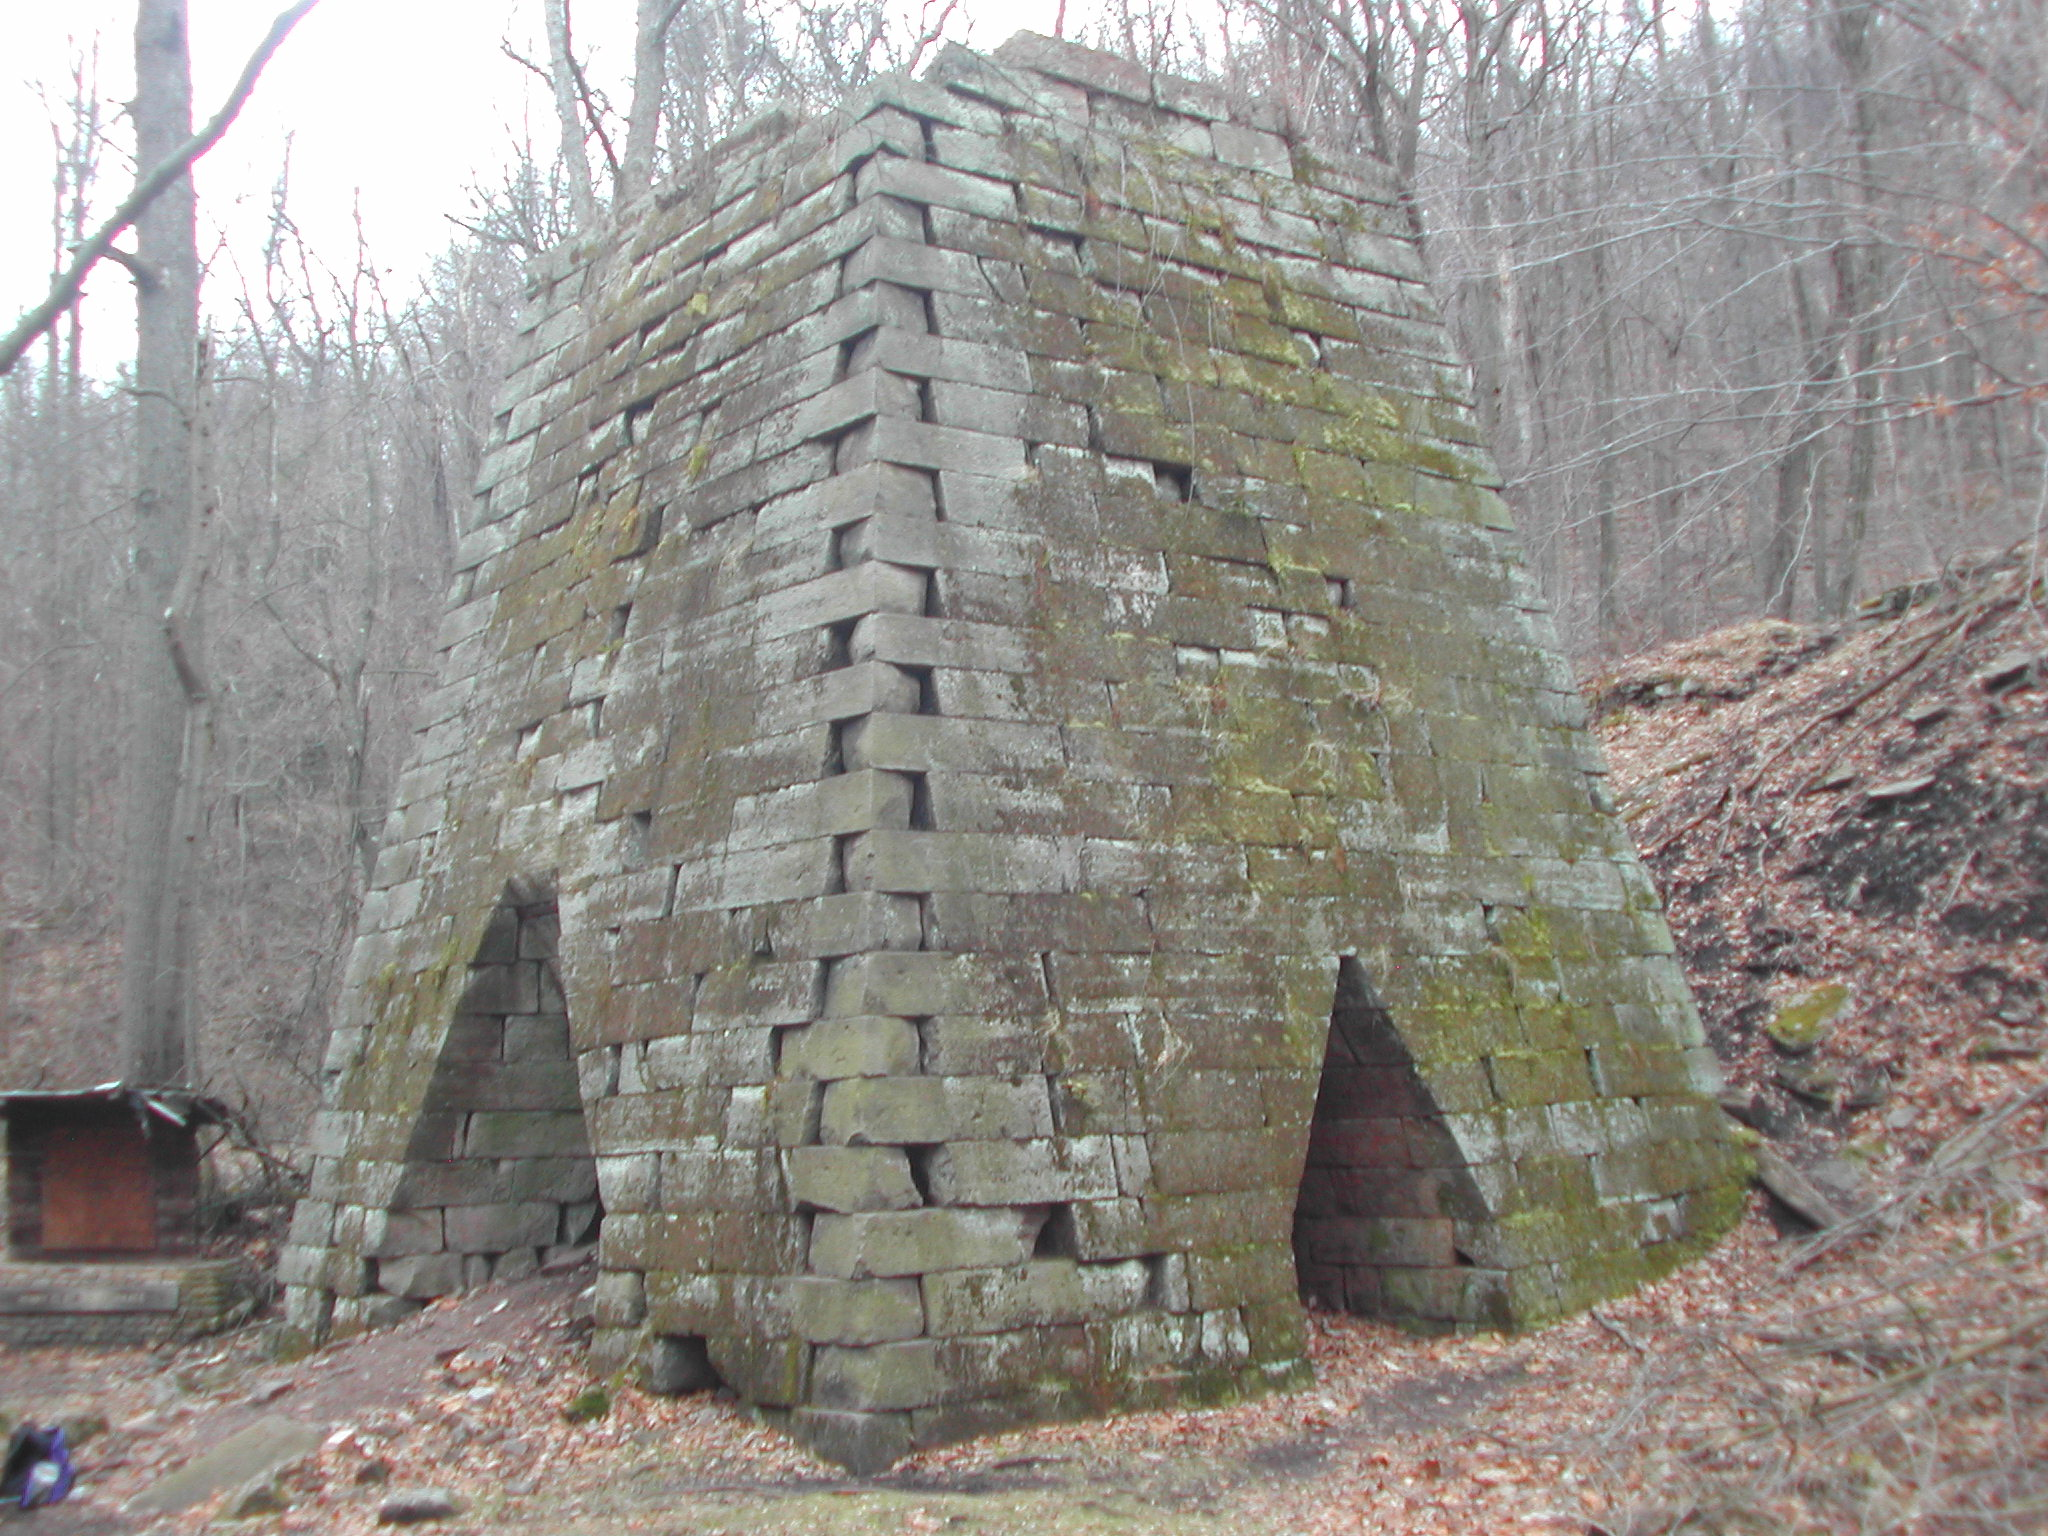 Another picture of the furnace.